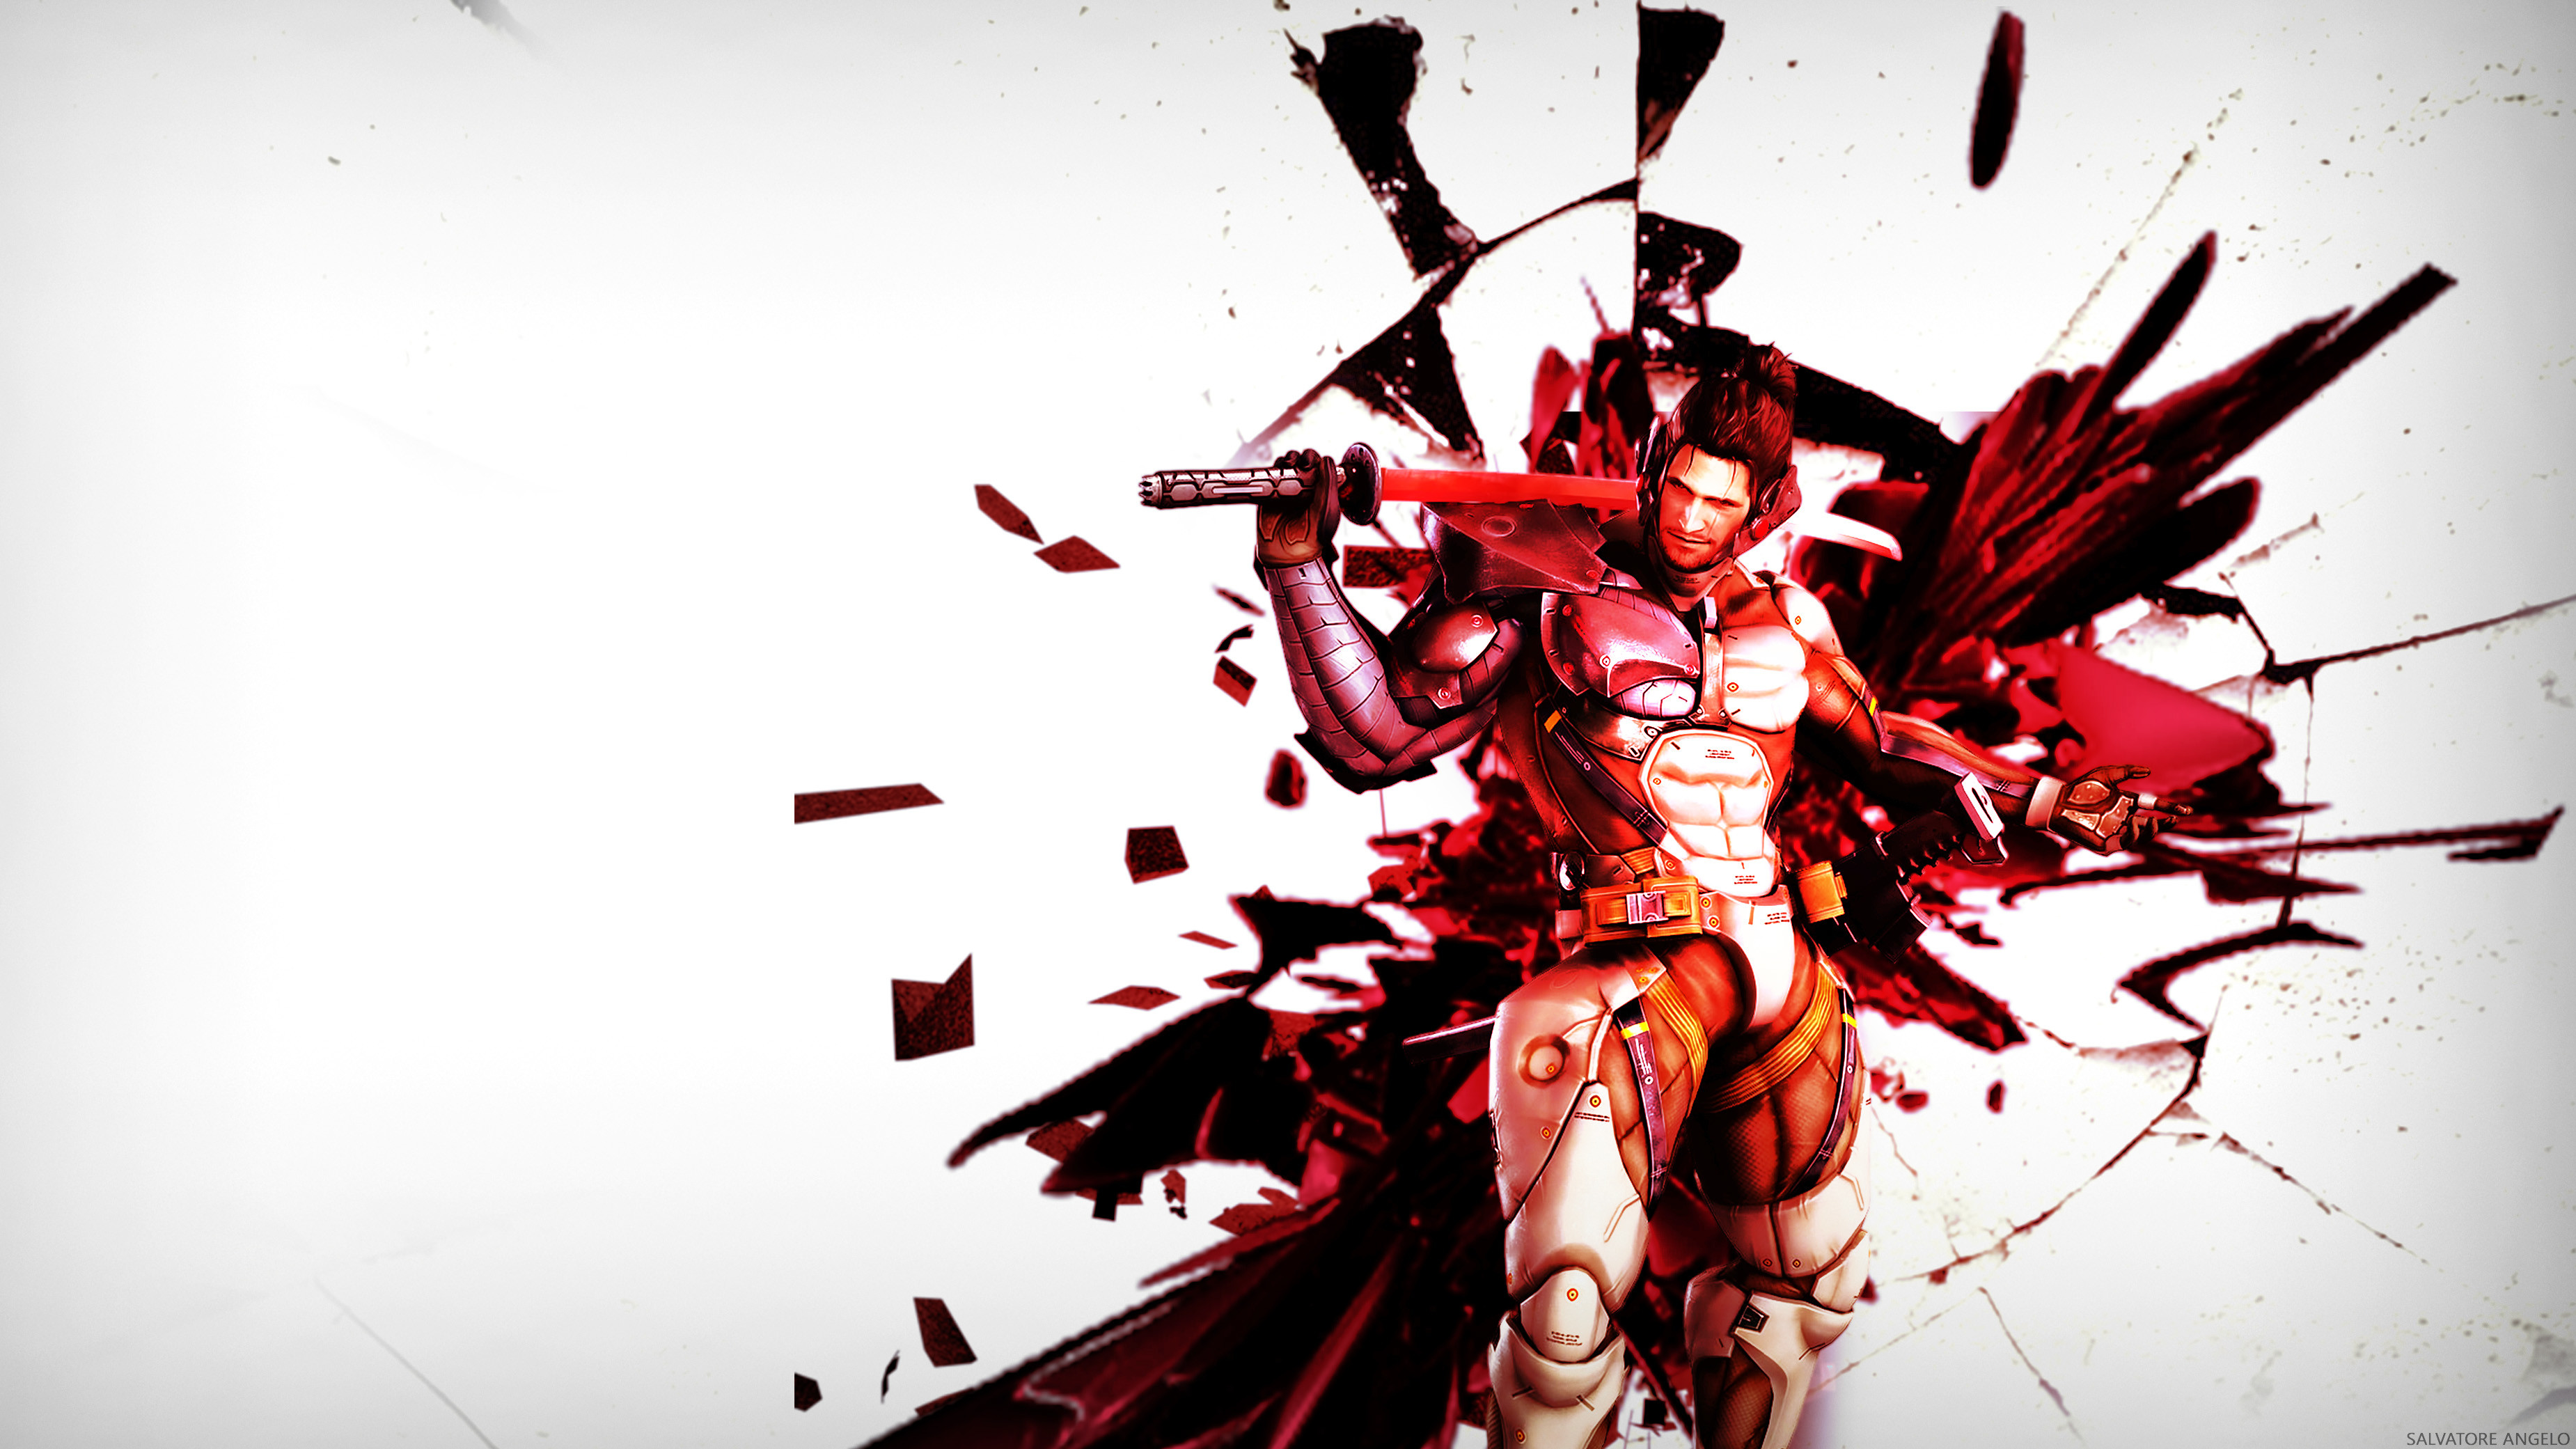 3700x2081 HD Wallpaper | Background ID:564576.  Video Game Metal Gear Rising.  1 Like. Favorite